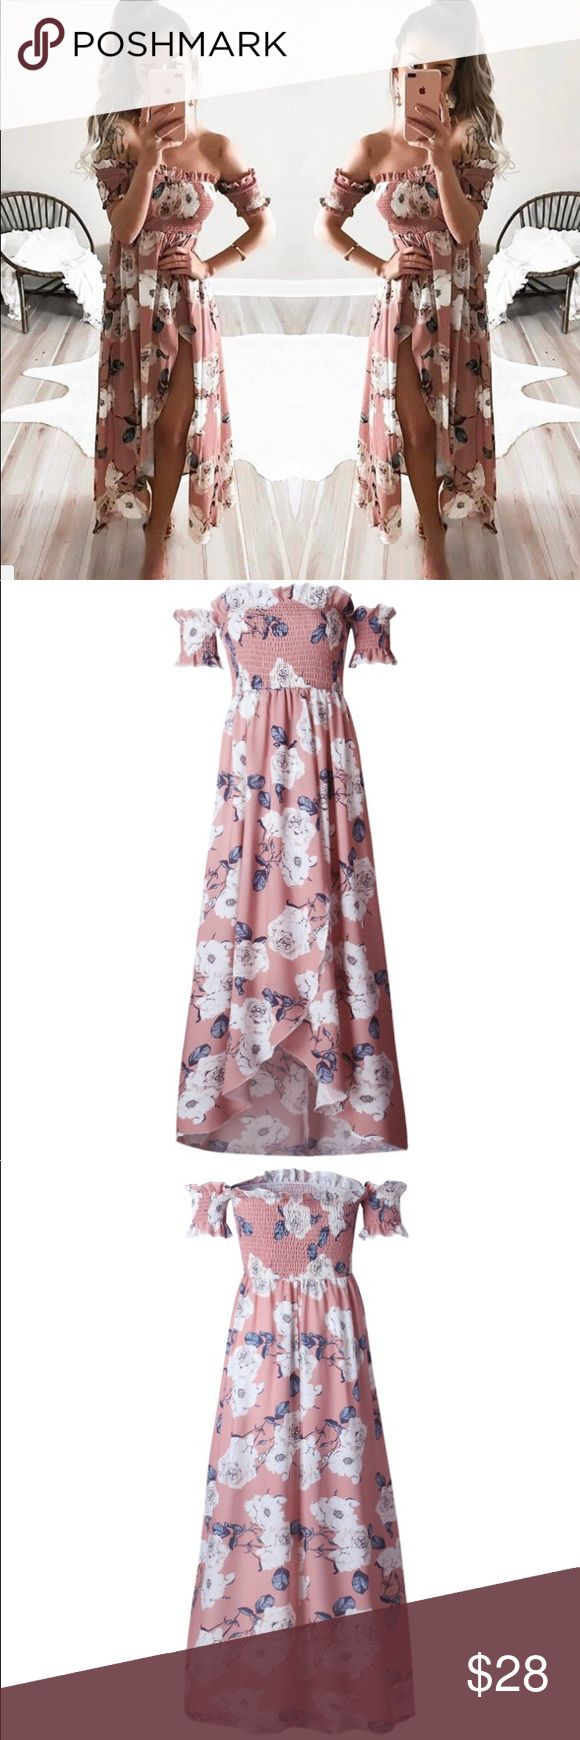 Boho Floral Off Shoulder Maxi Dress Rose Pink Brand new, no tags. Boutique item.  Please Compare Your Size With Following Measurement Before Purchasing.   Material: 100% Polyester.  Size M: Bust 25~36in, stretch flexible, back side length appr. 47.5in.                                                                    Size L: Bust: 27~38in, stretch flexible; Back Side Length: appr. 48in.   Color: Rose pink. Dresses Maxi